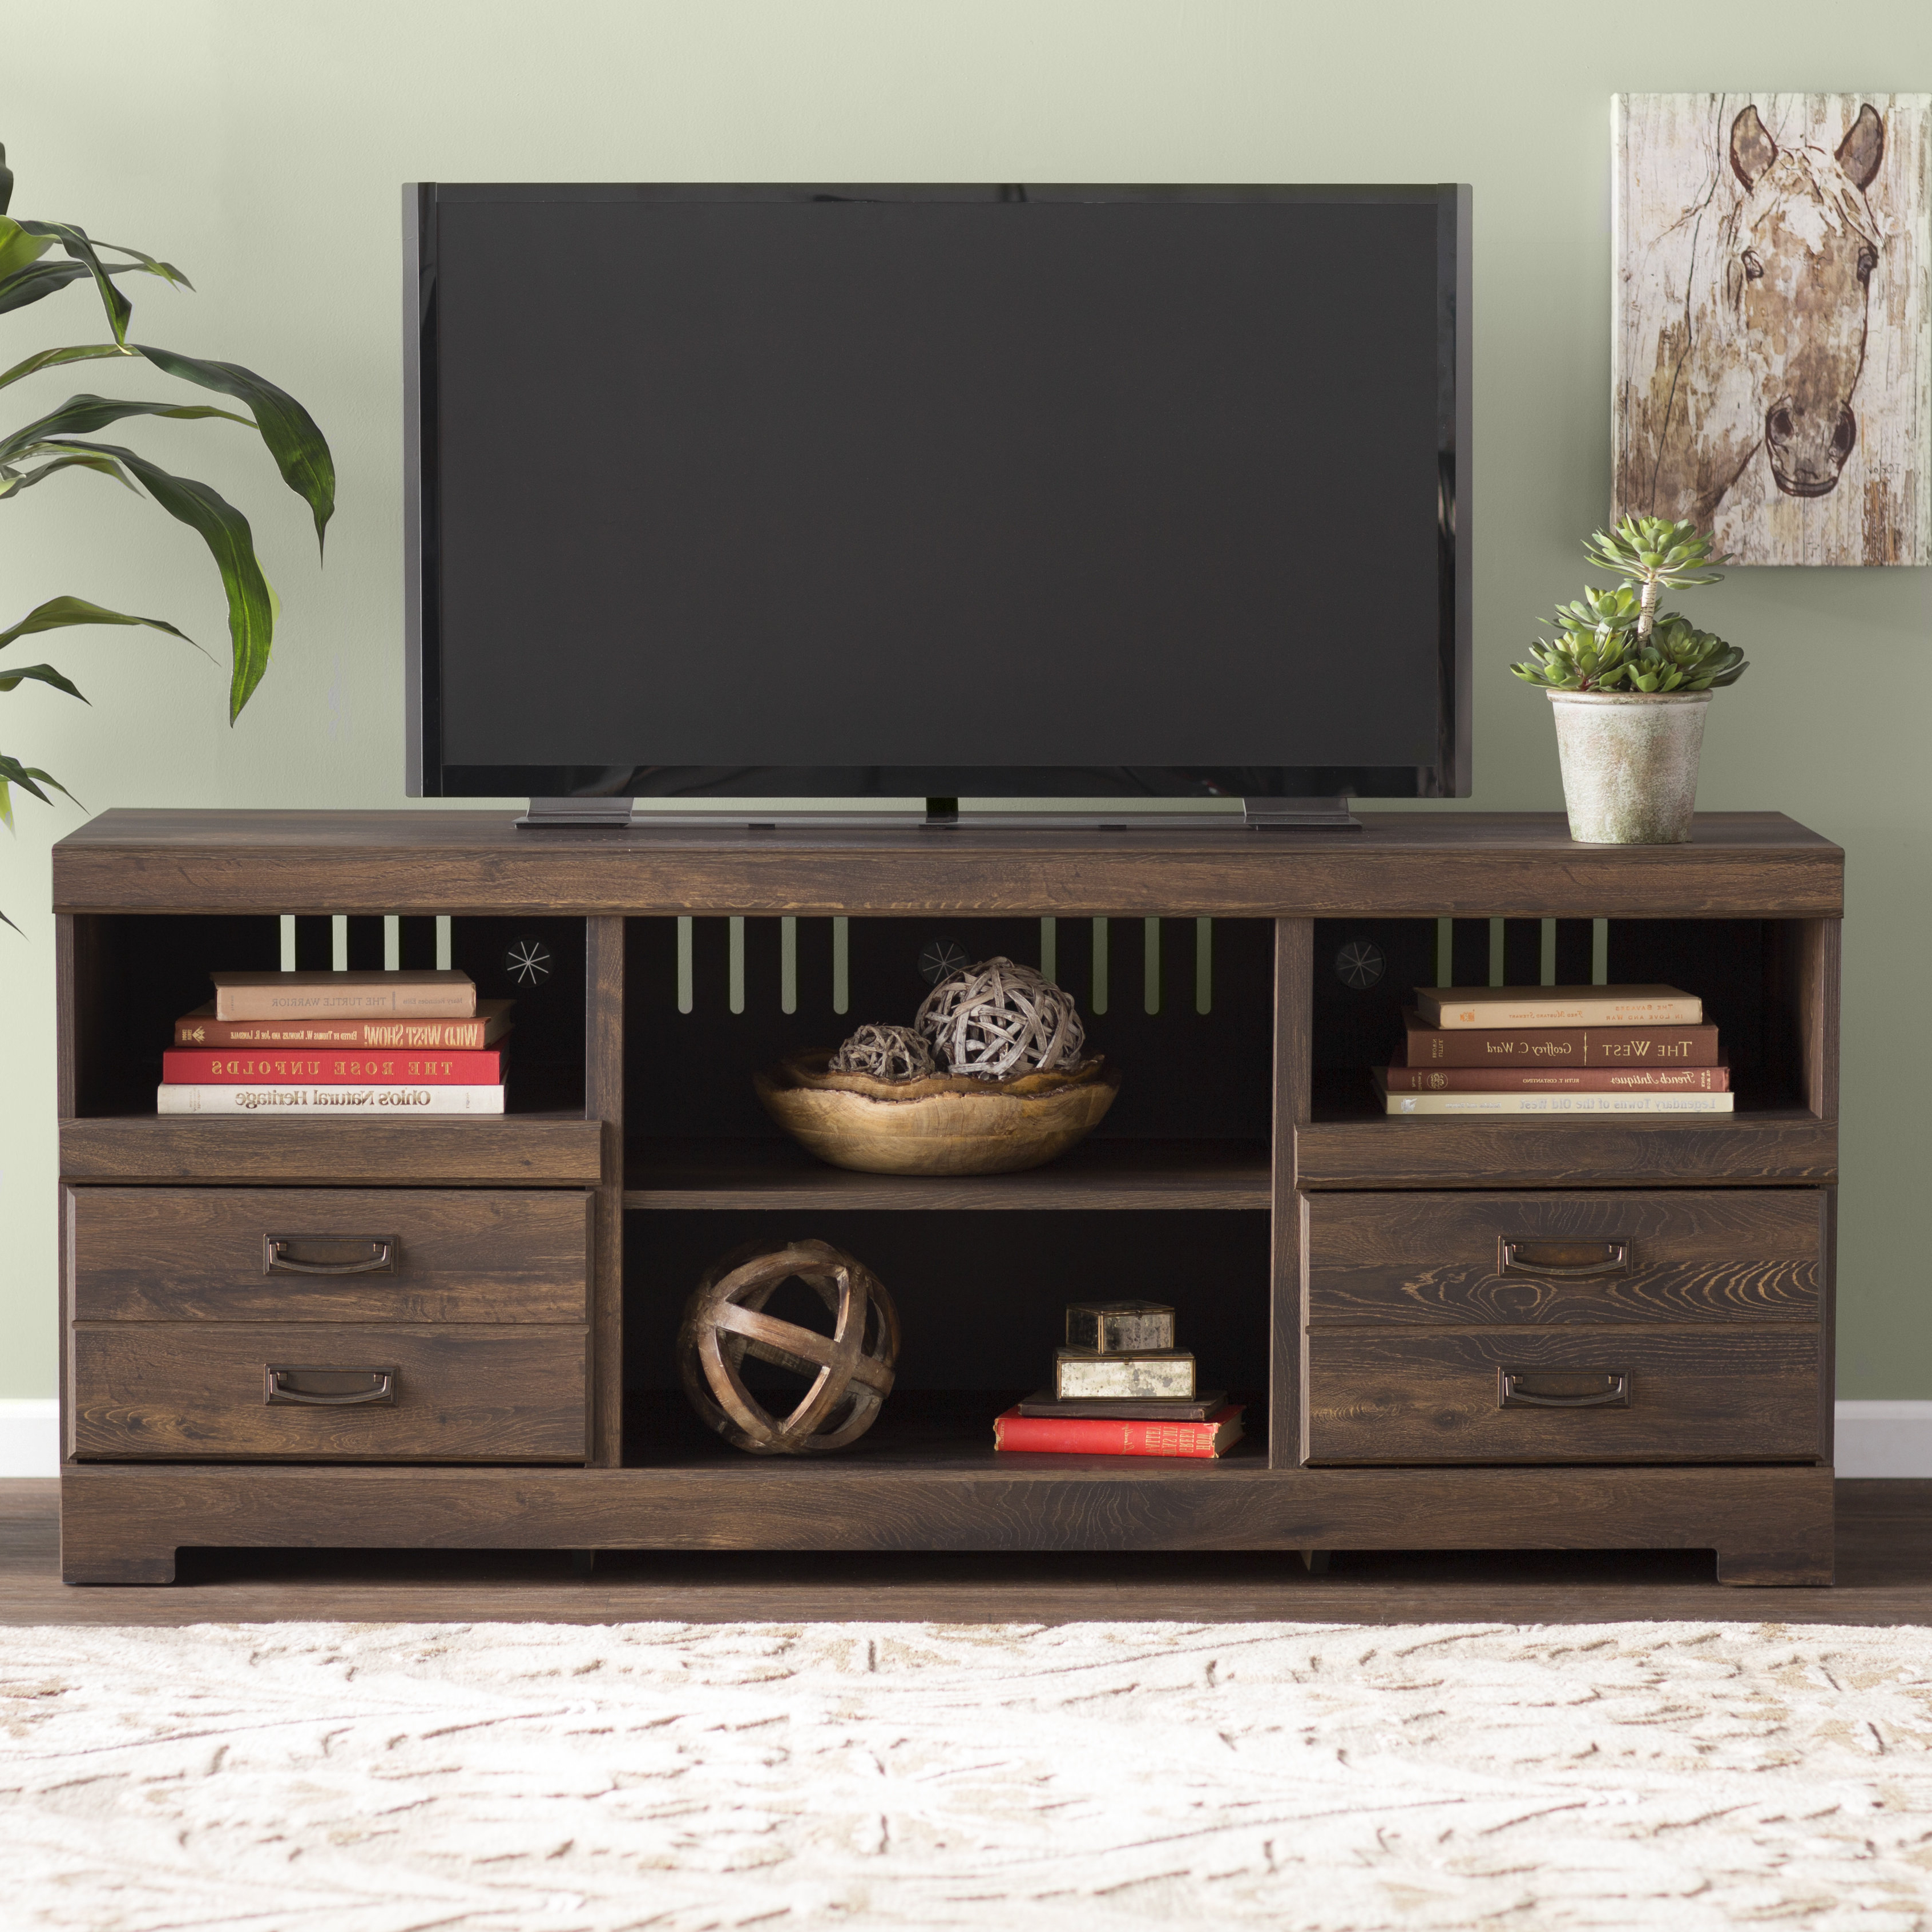 Best And Newest Enclosed Tv Cabinets With Doors In Tv Cabinet With Doors That Enclose Small Enclosed Modern Fully (View 2 of 20)